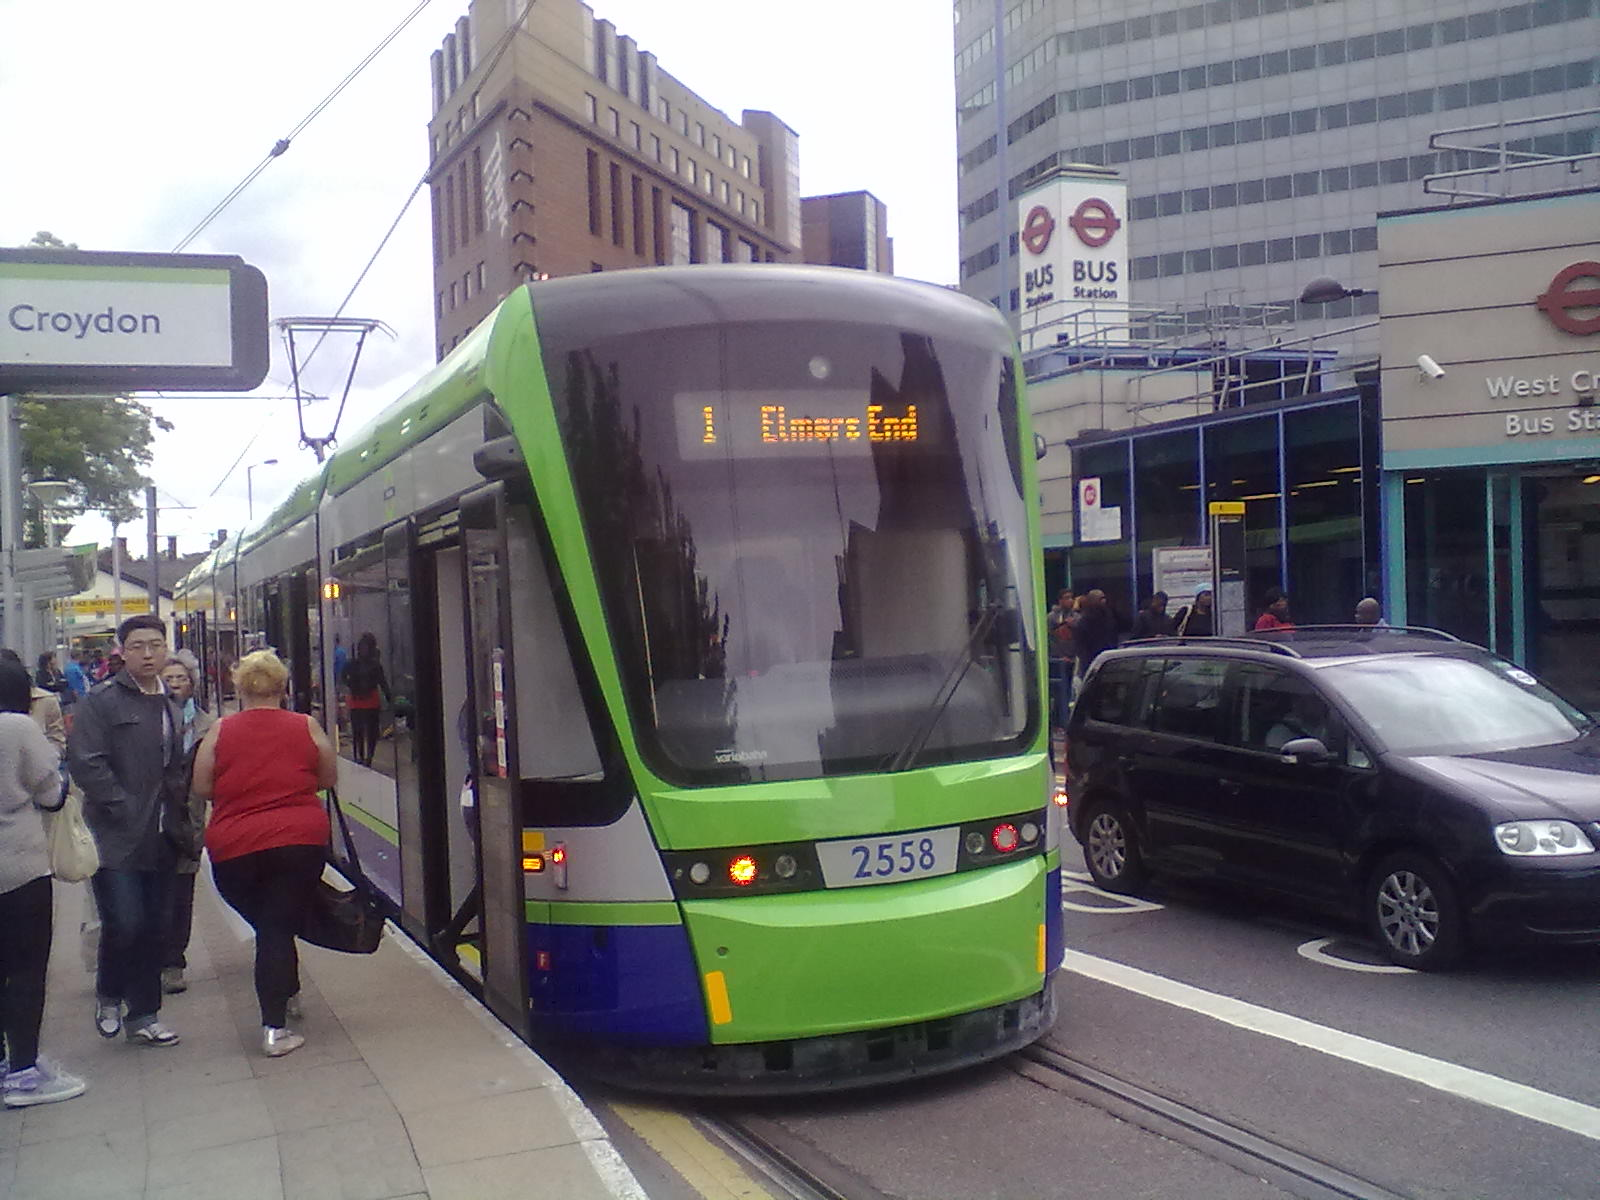 File:Tram 2558 at West Croydon.jpg